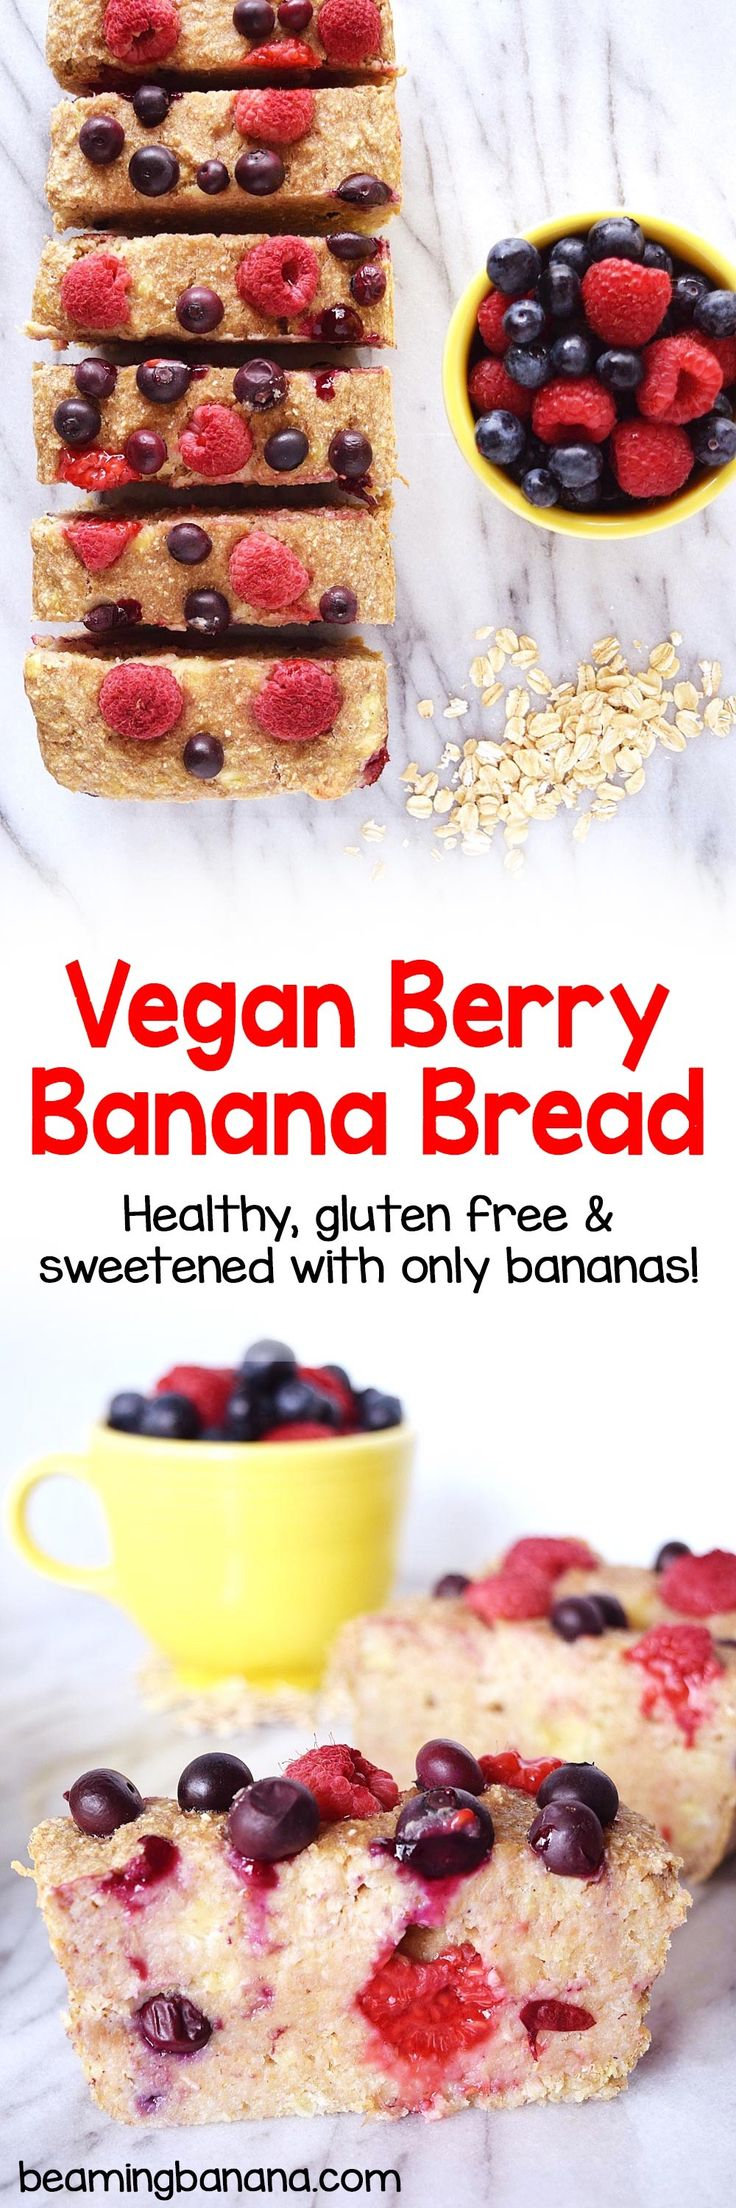 Soft, sweet banana bread full of fresh, juicy berries! This vegan berry banana bread is easy to make, healthy, gluten free and totally naturally sweetened.